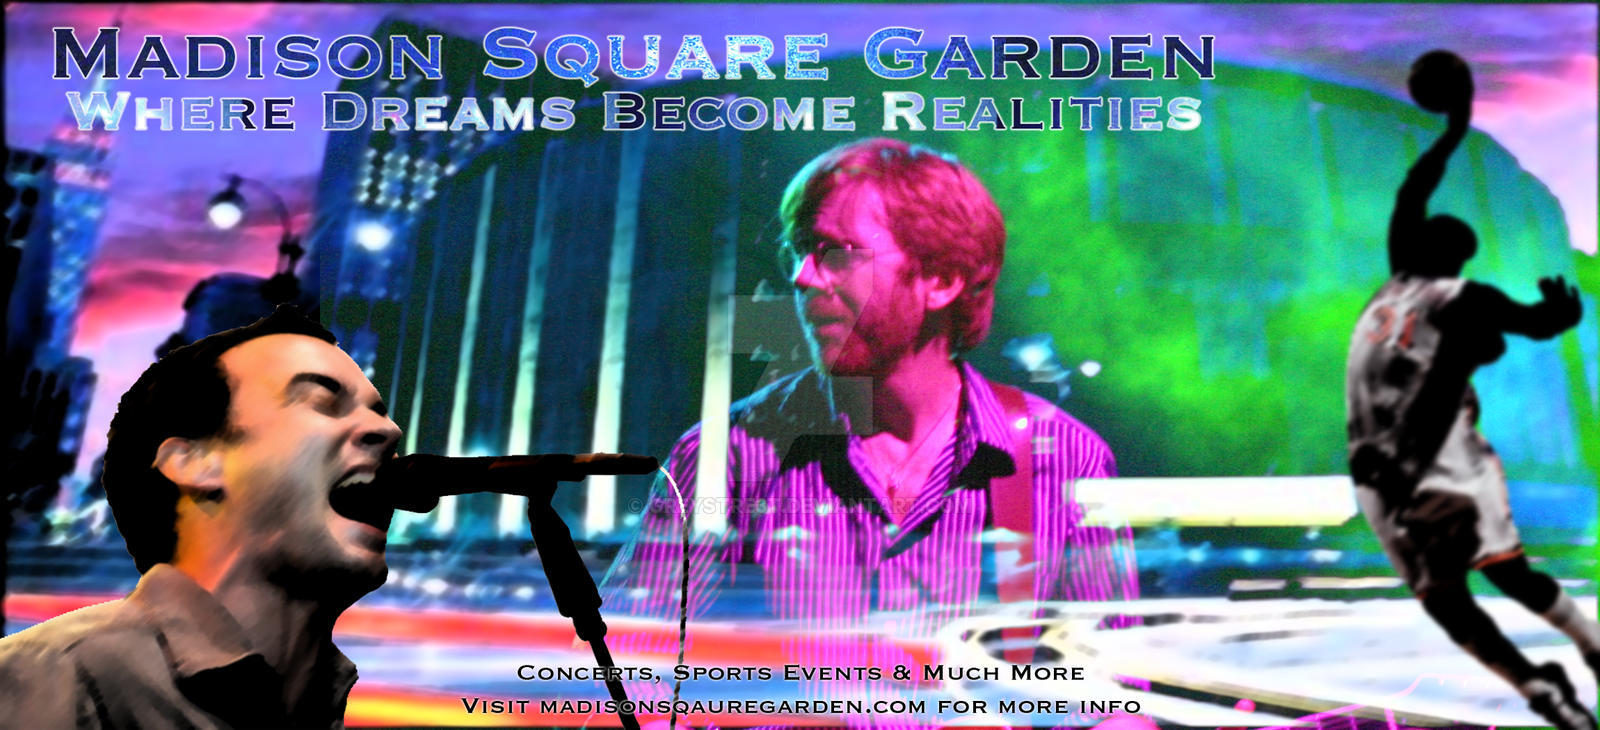 Madison square garden ad by greystre3t on deviantart for Madison square garden employment